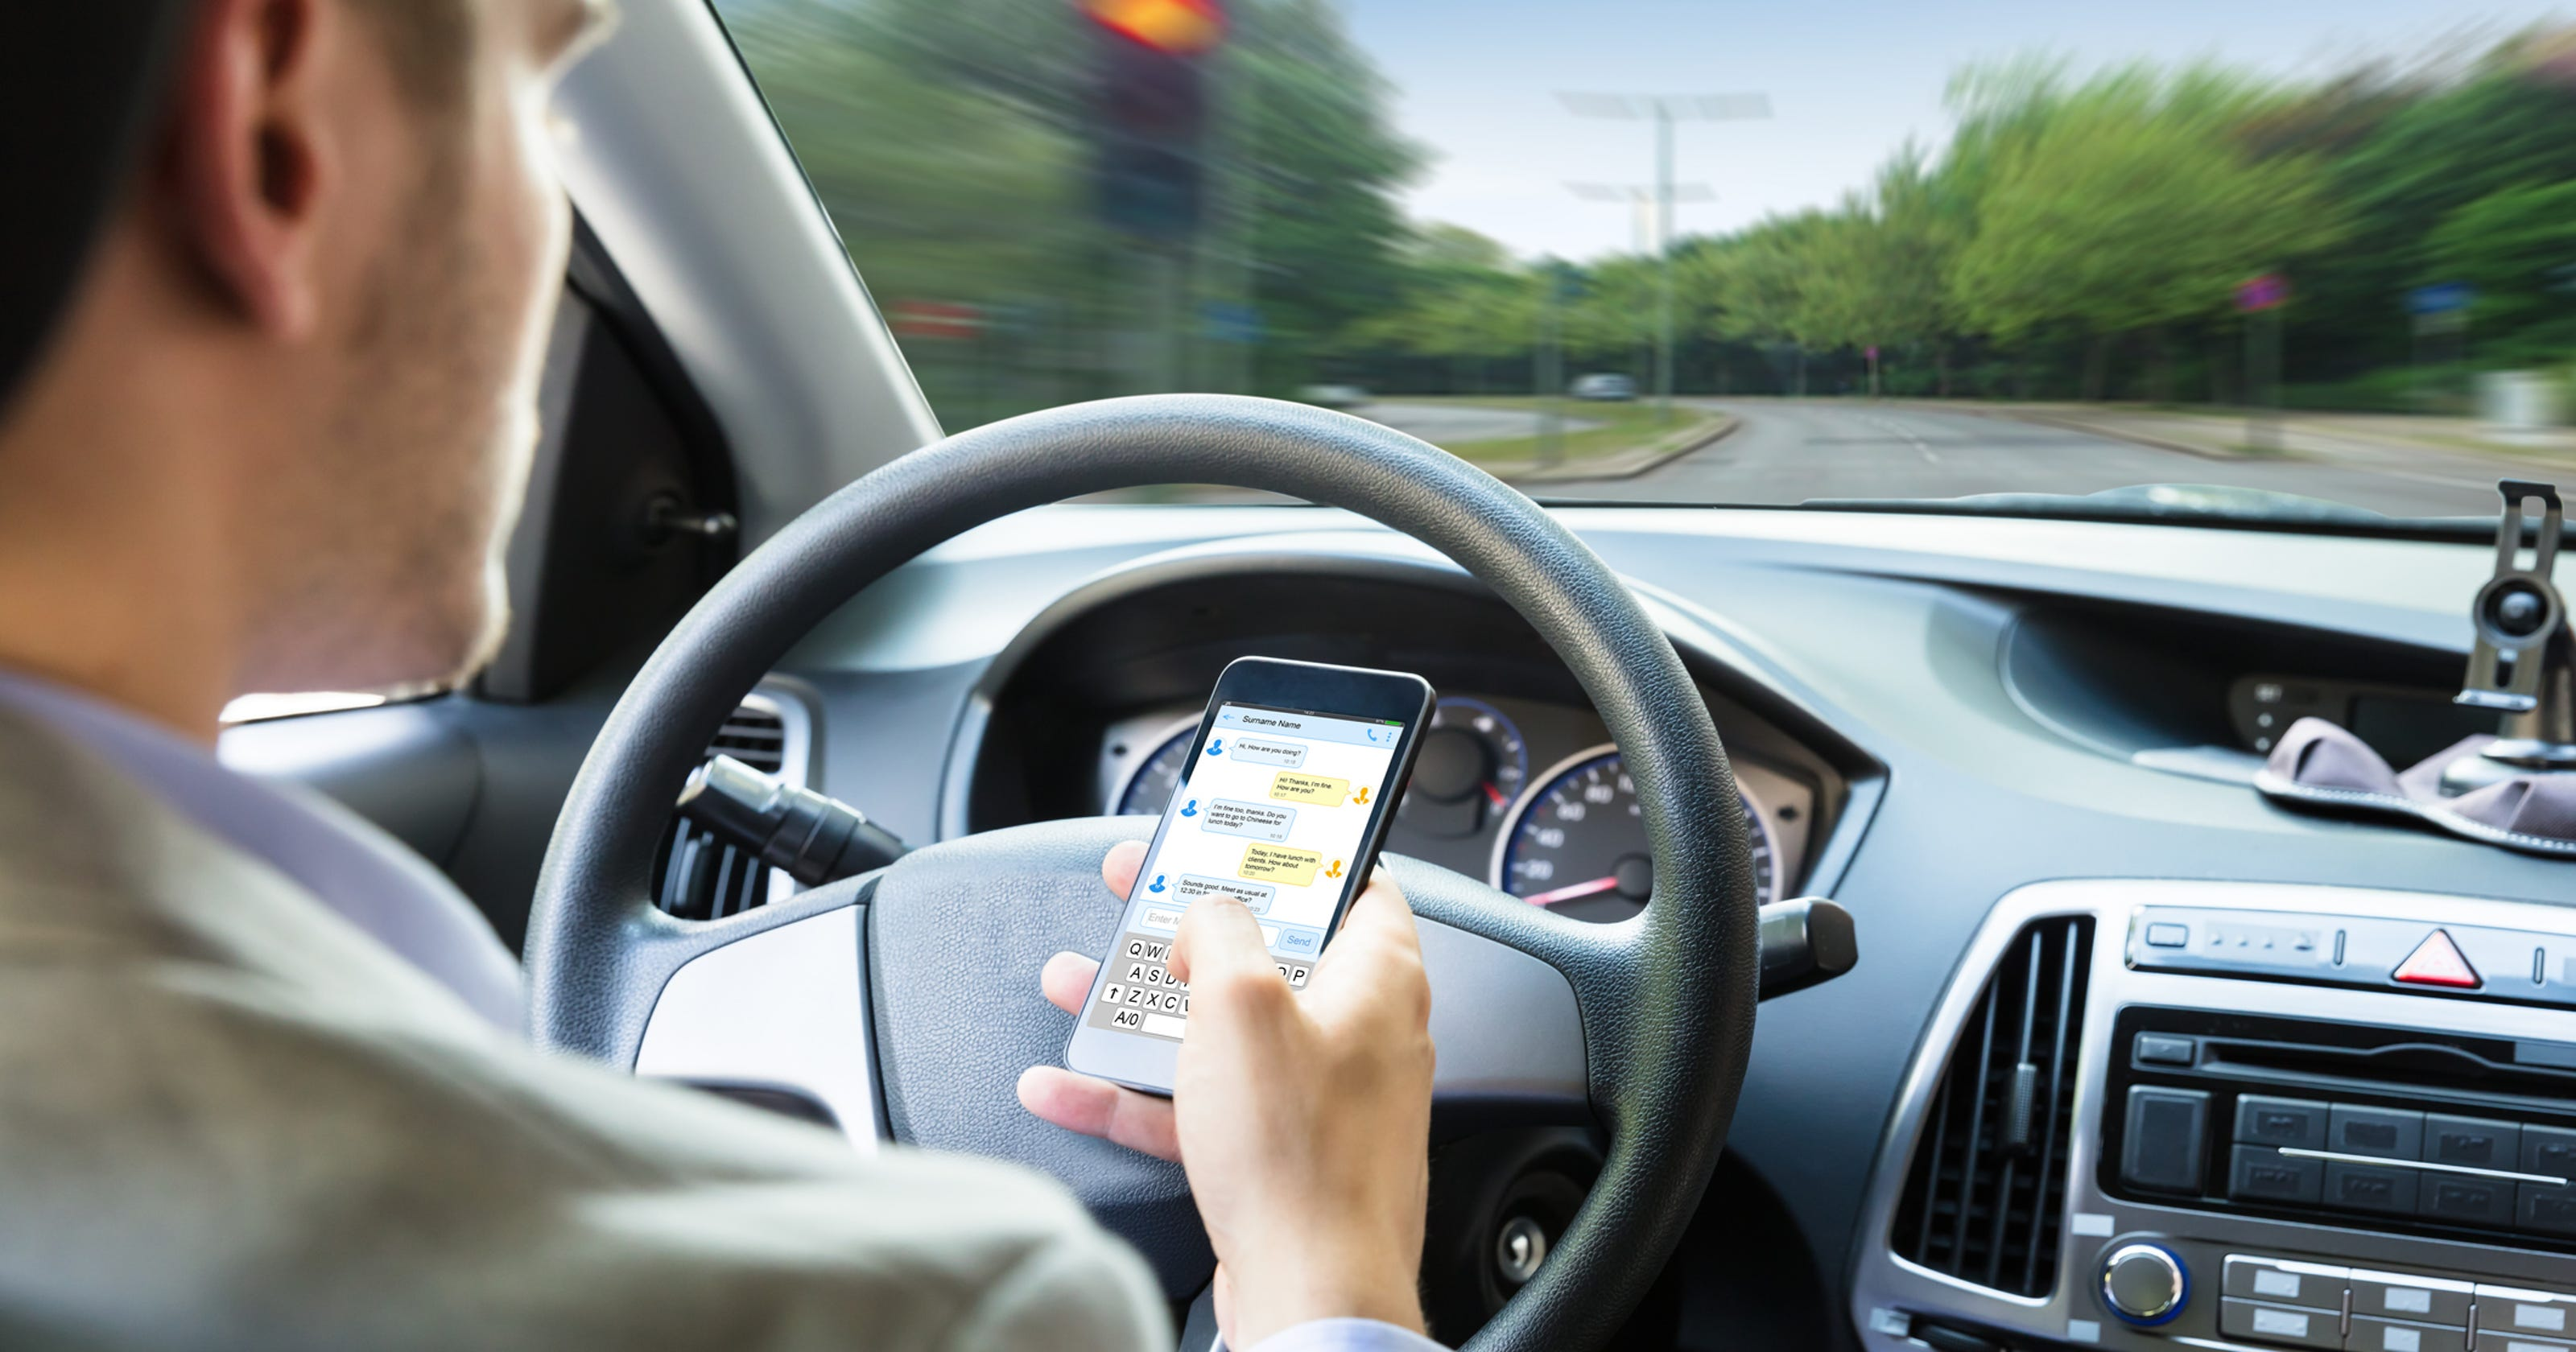 """Hands Free Law"": Distracted driving targeted by new ..."